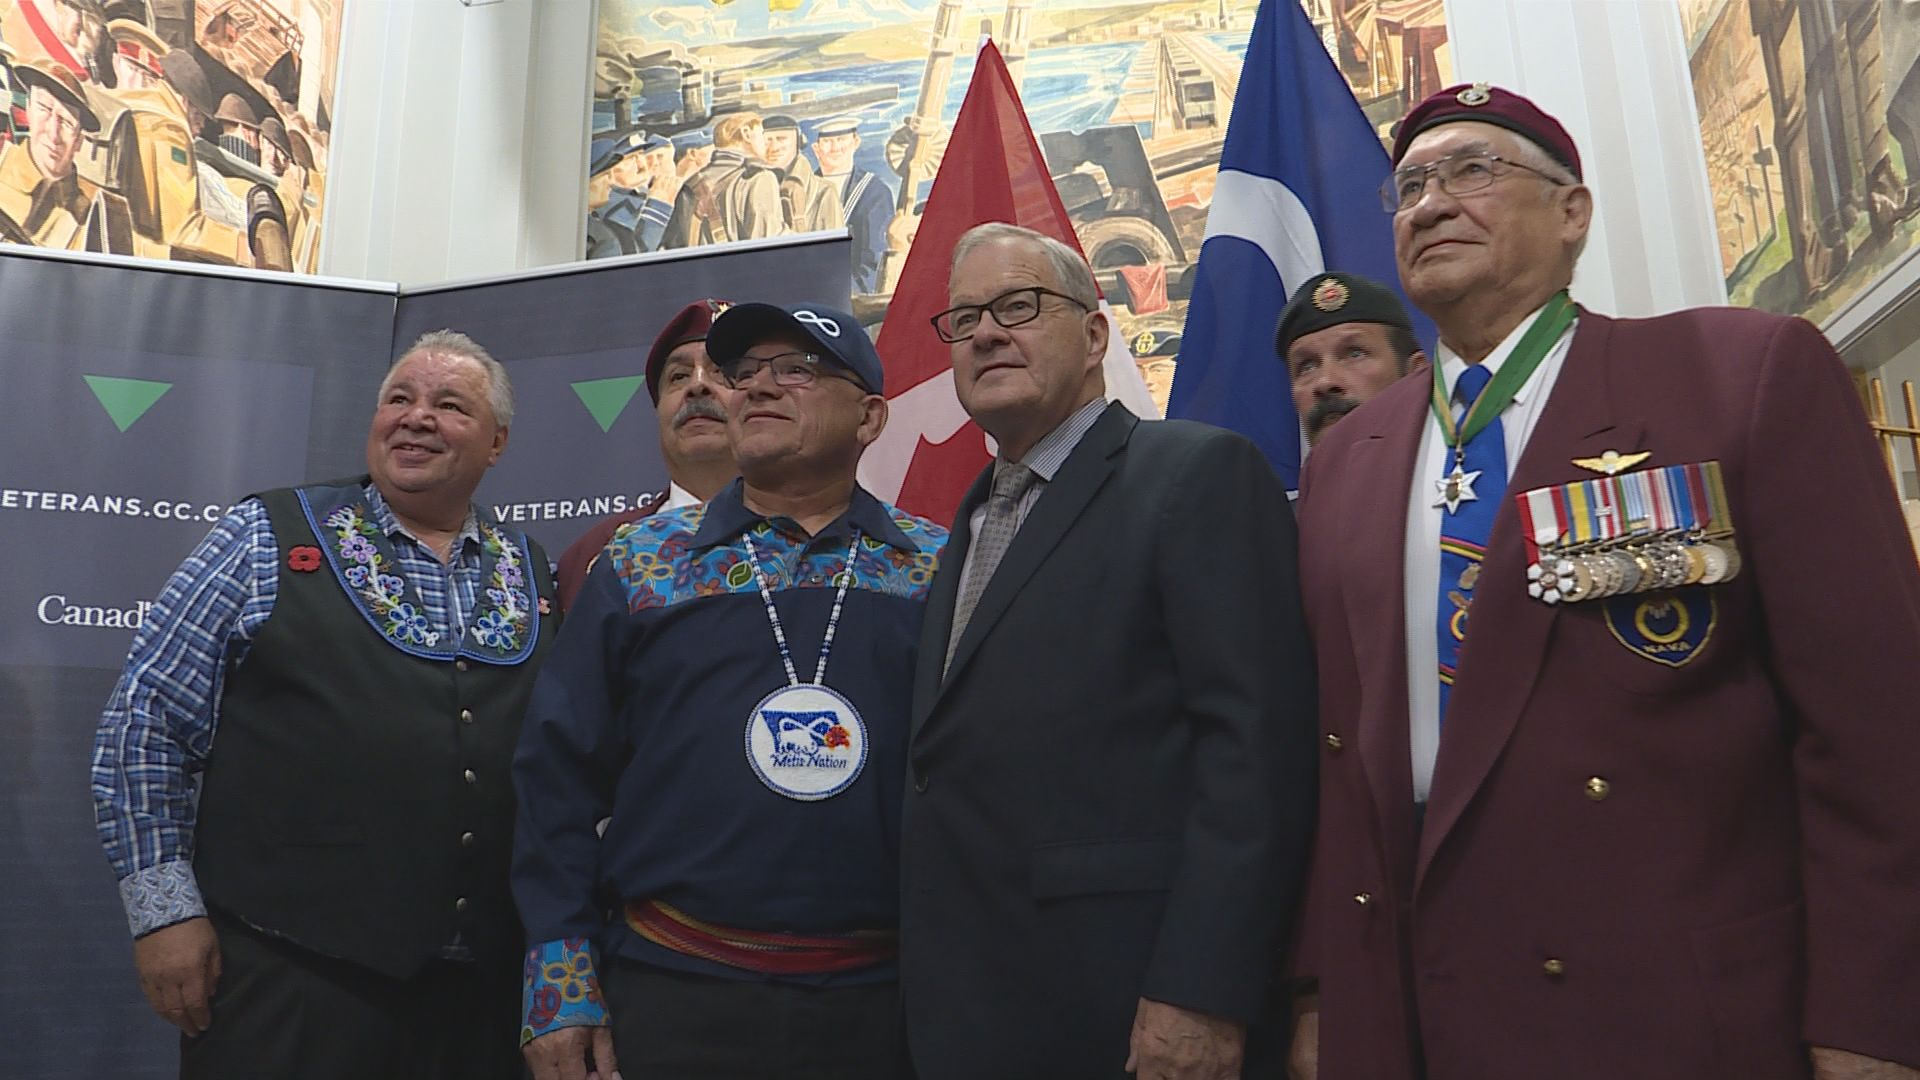 Ottawa issues multi-million dollar apology to WWII Metis veterans